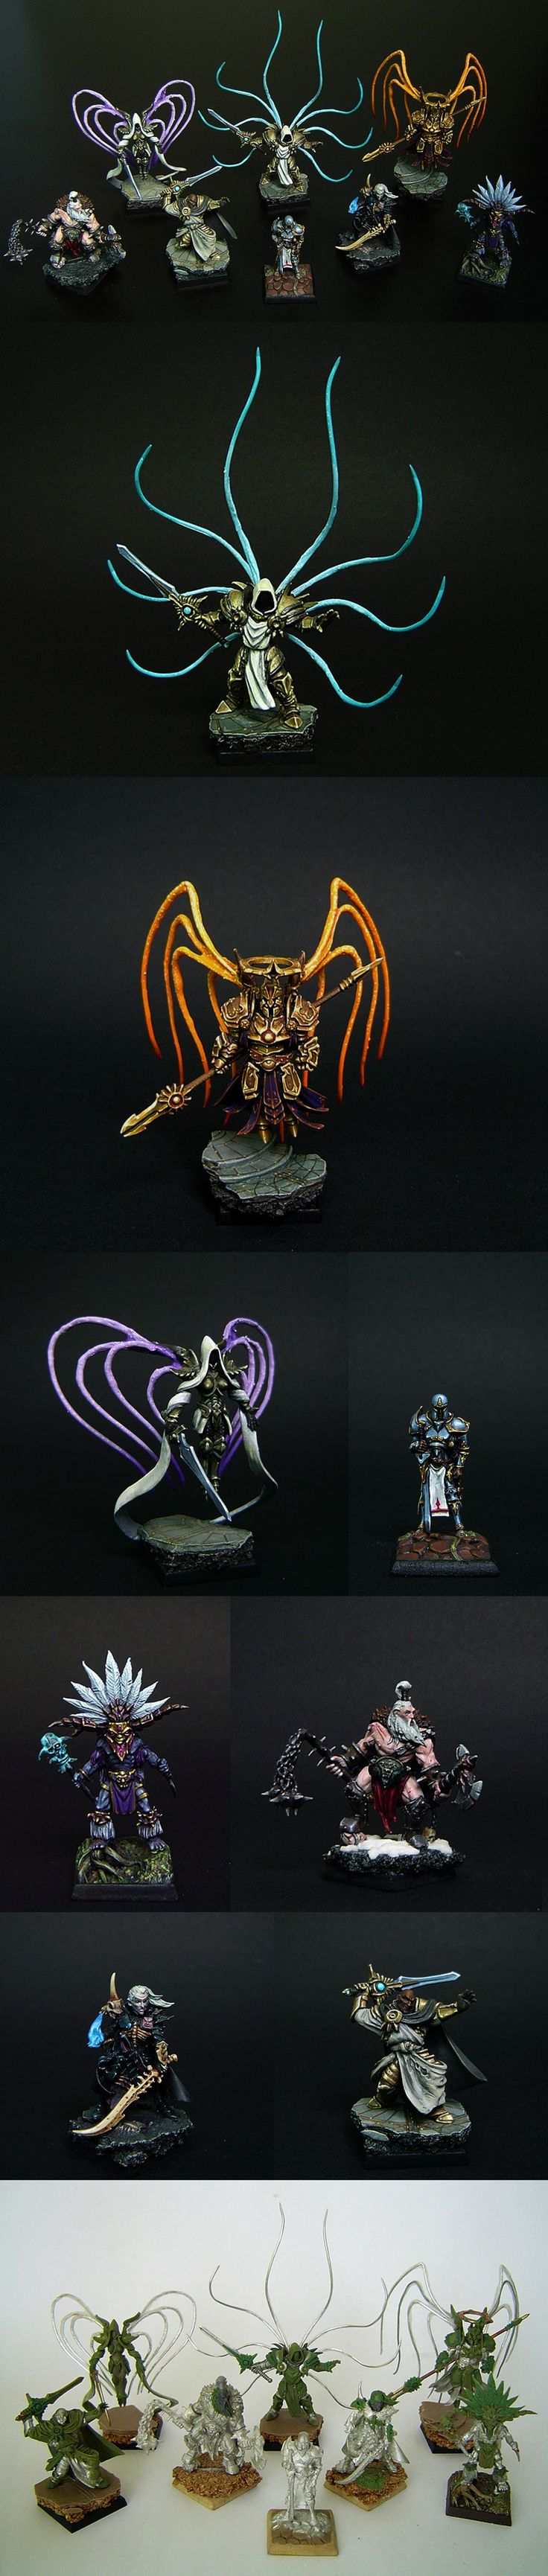 Miniature conversions for Diablo characters